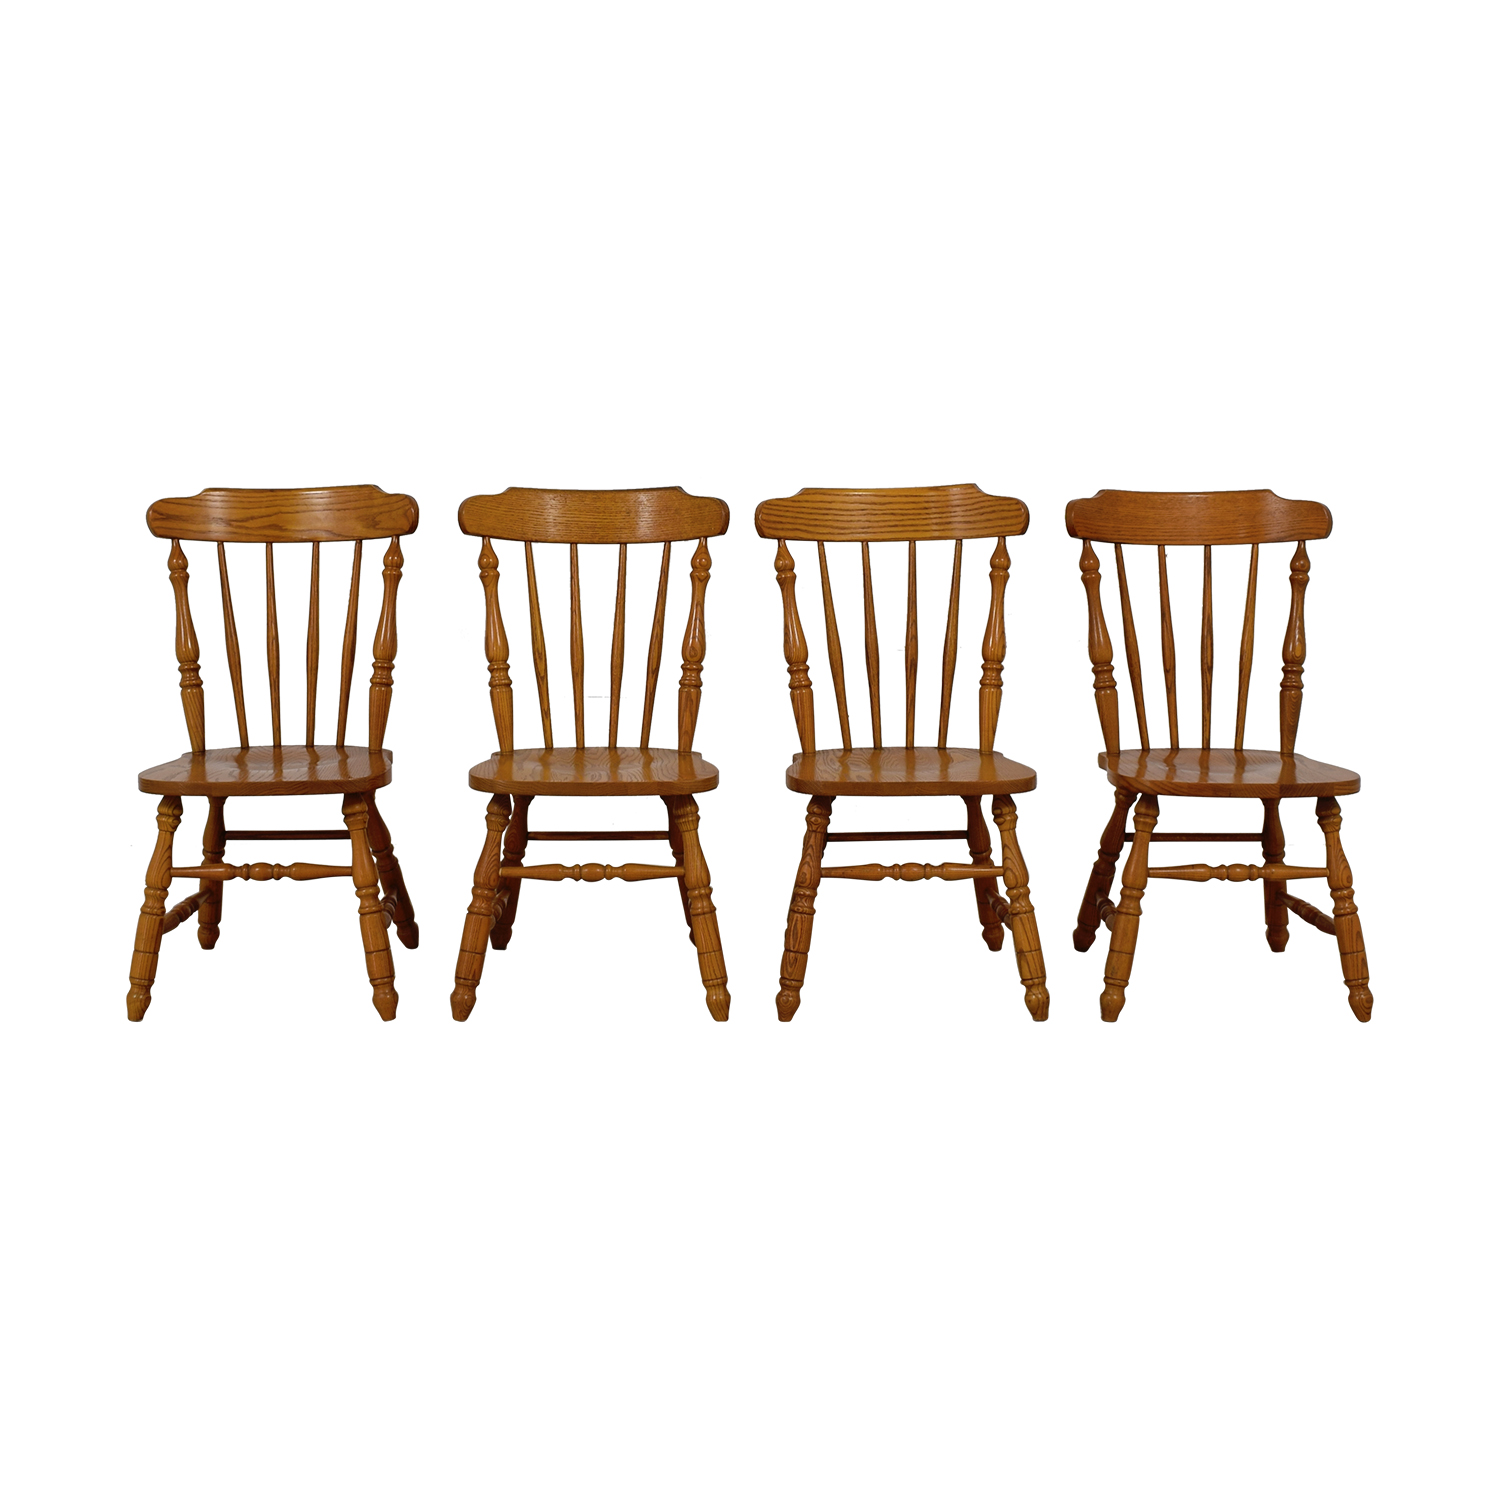 74 Off Virginia House Virginia House Wood Dining Room Chairs Chairs